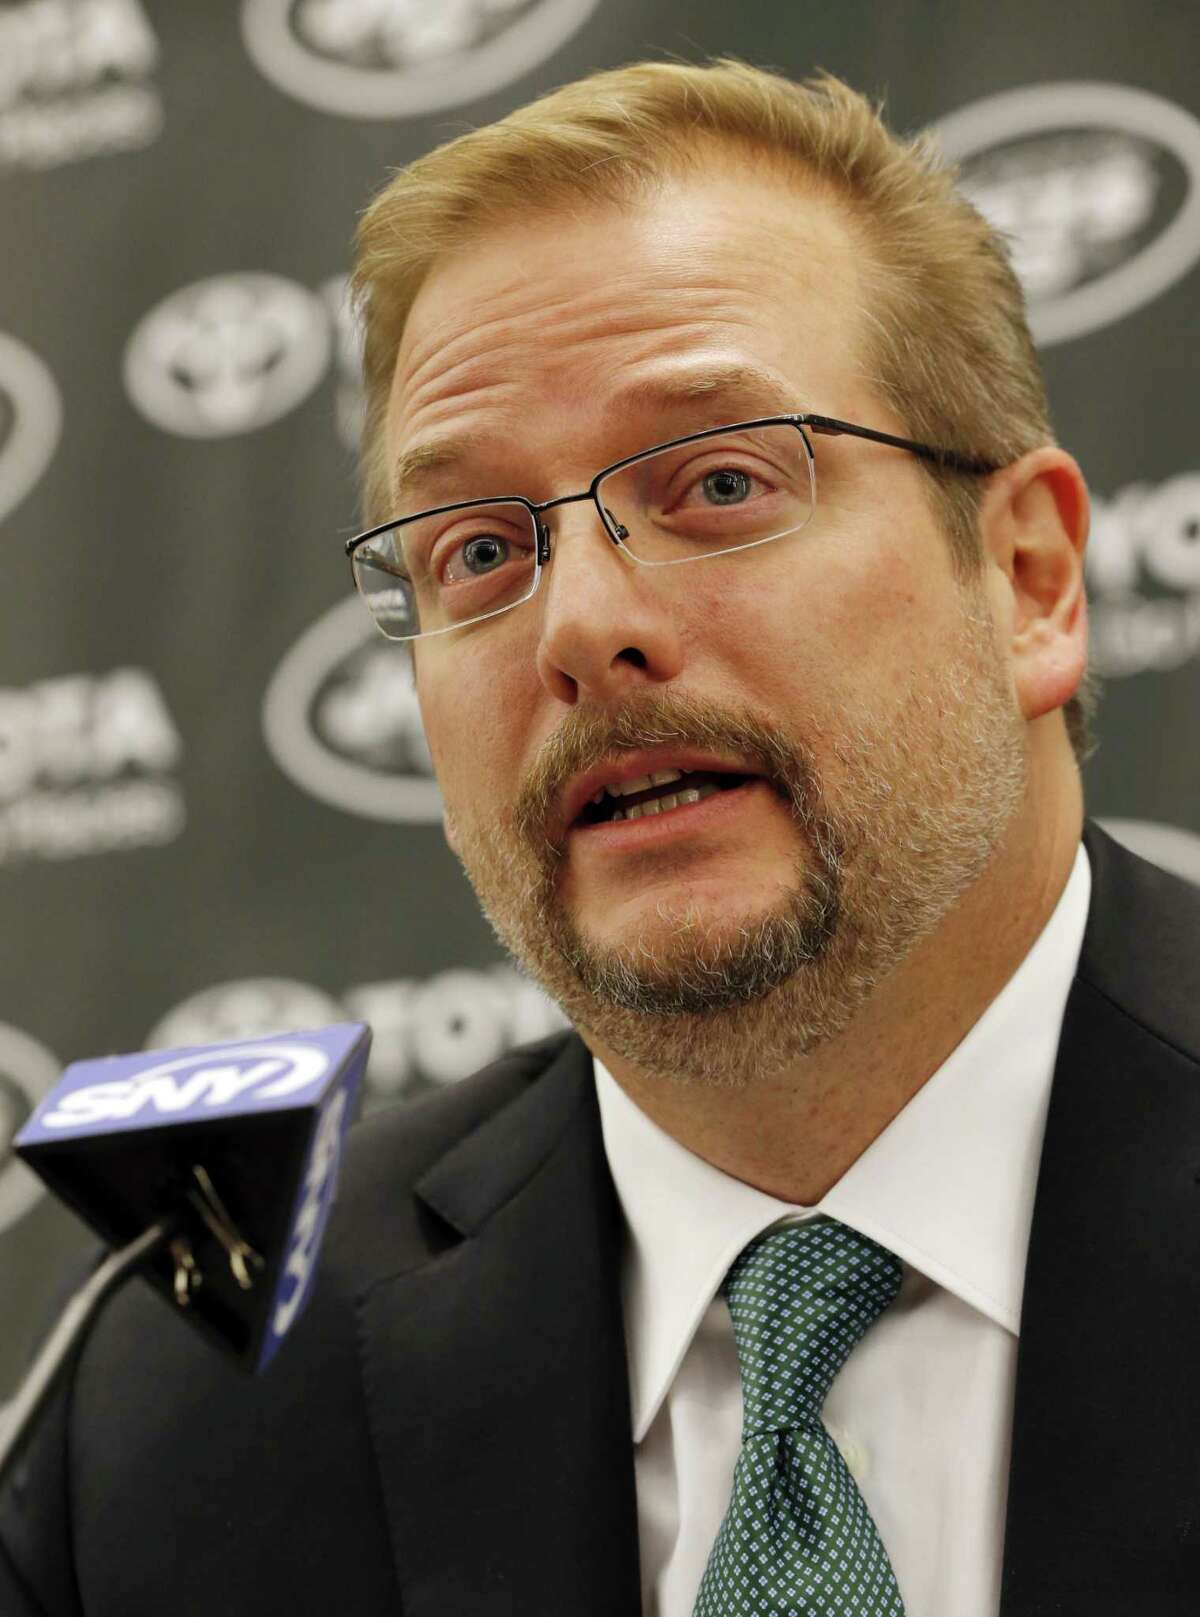 New York Jets general manager Mike Maccagnan speaks during a press conference on Jan. 21 in Florham Park, N.J.